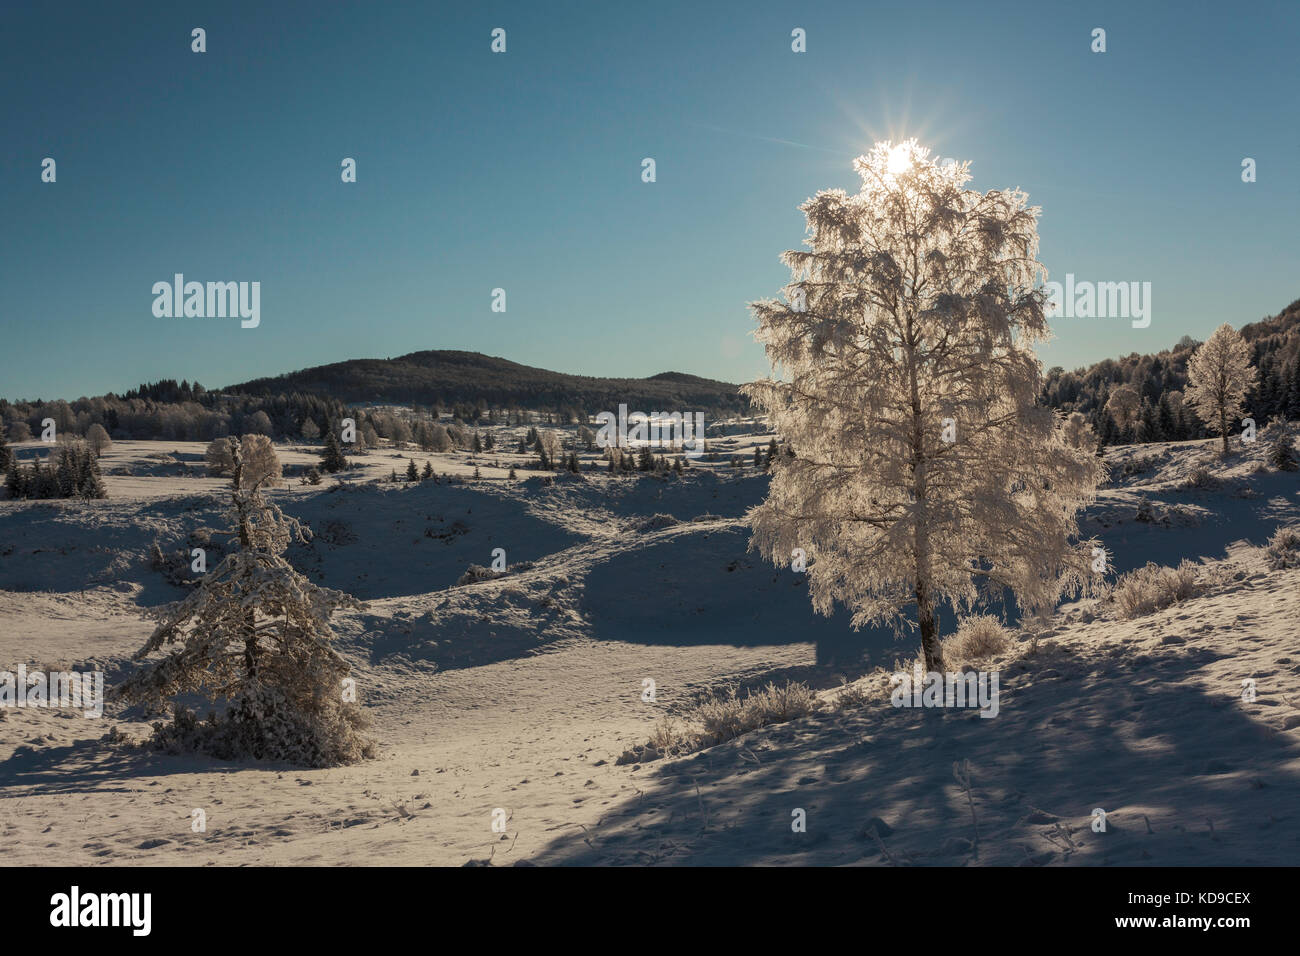 After heavy snow, Kočevska region is covered in idilic white clothes. With amazing sunset near village Laze. - Stock Image